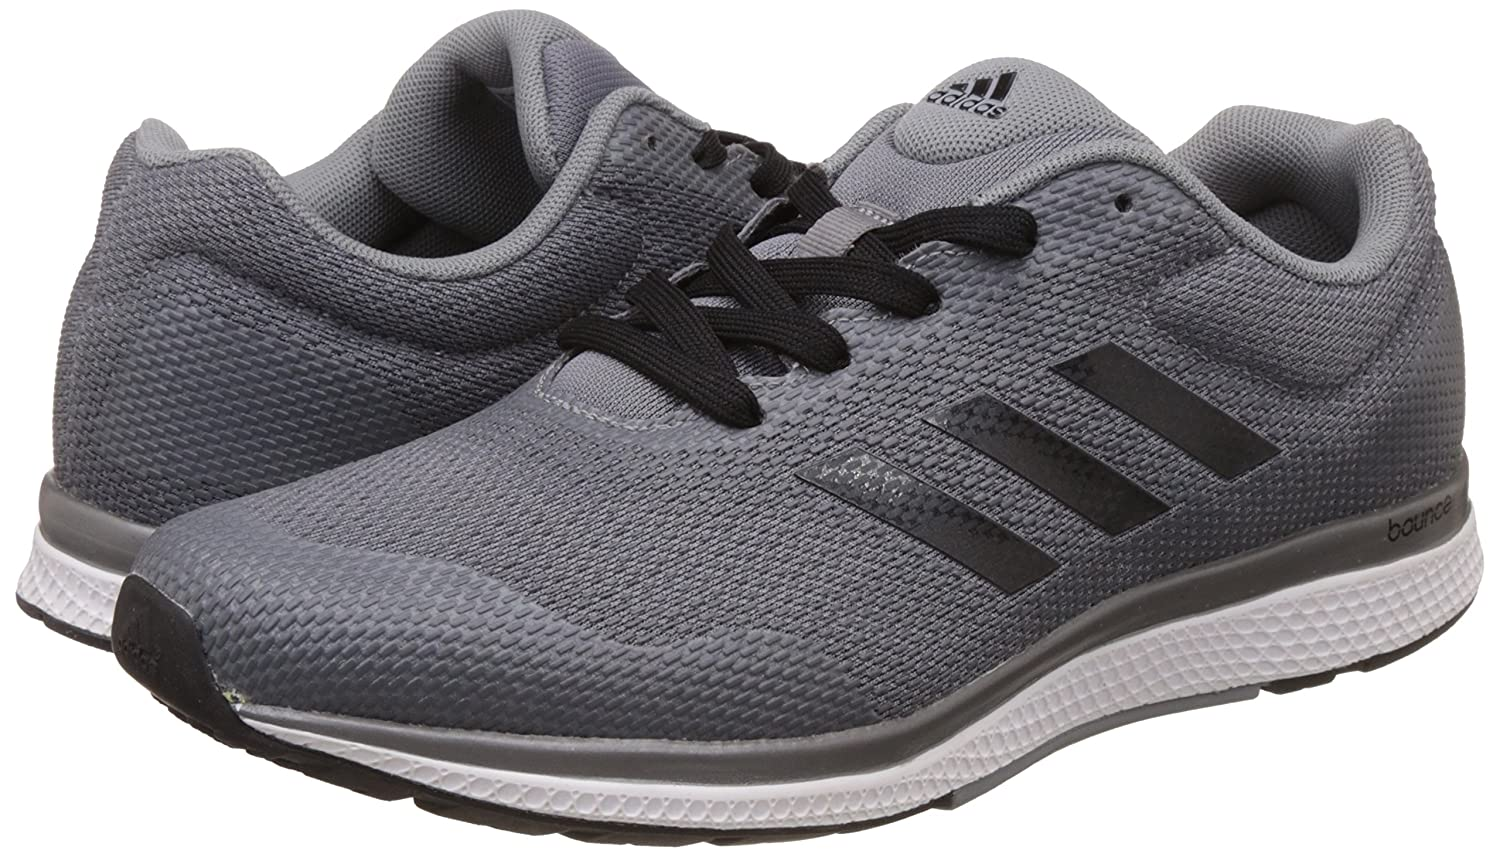 0e172bed097a1 Adidas Men s Mana Bounce 2 M Aramis Grey